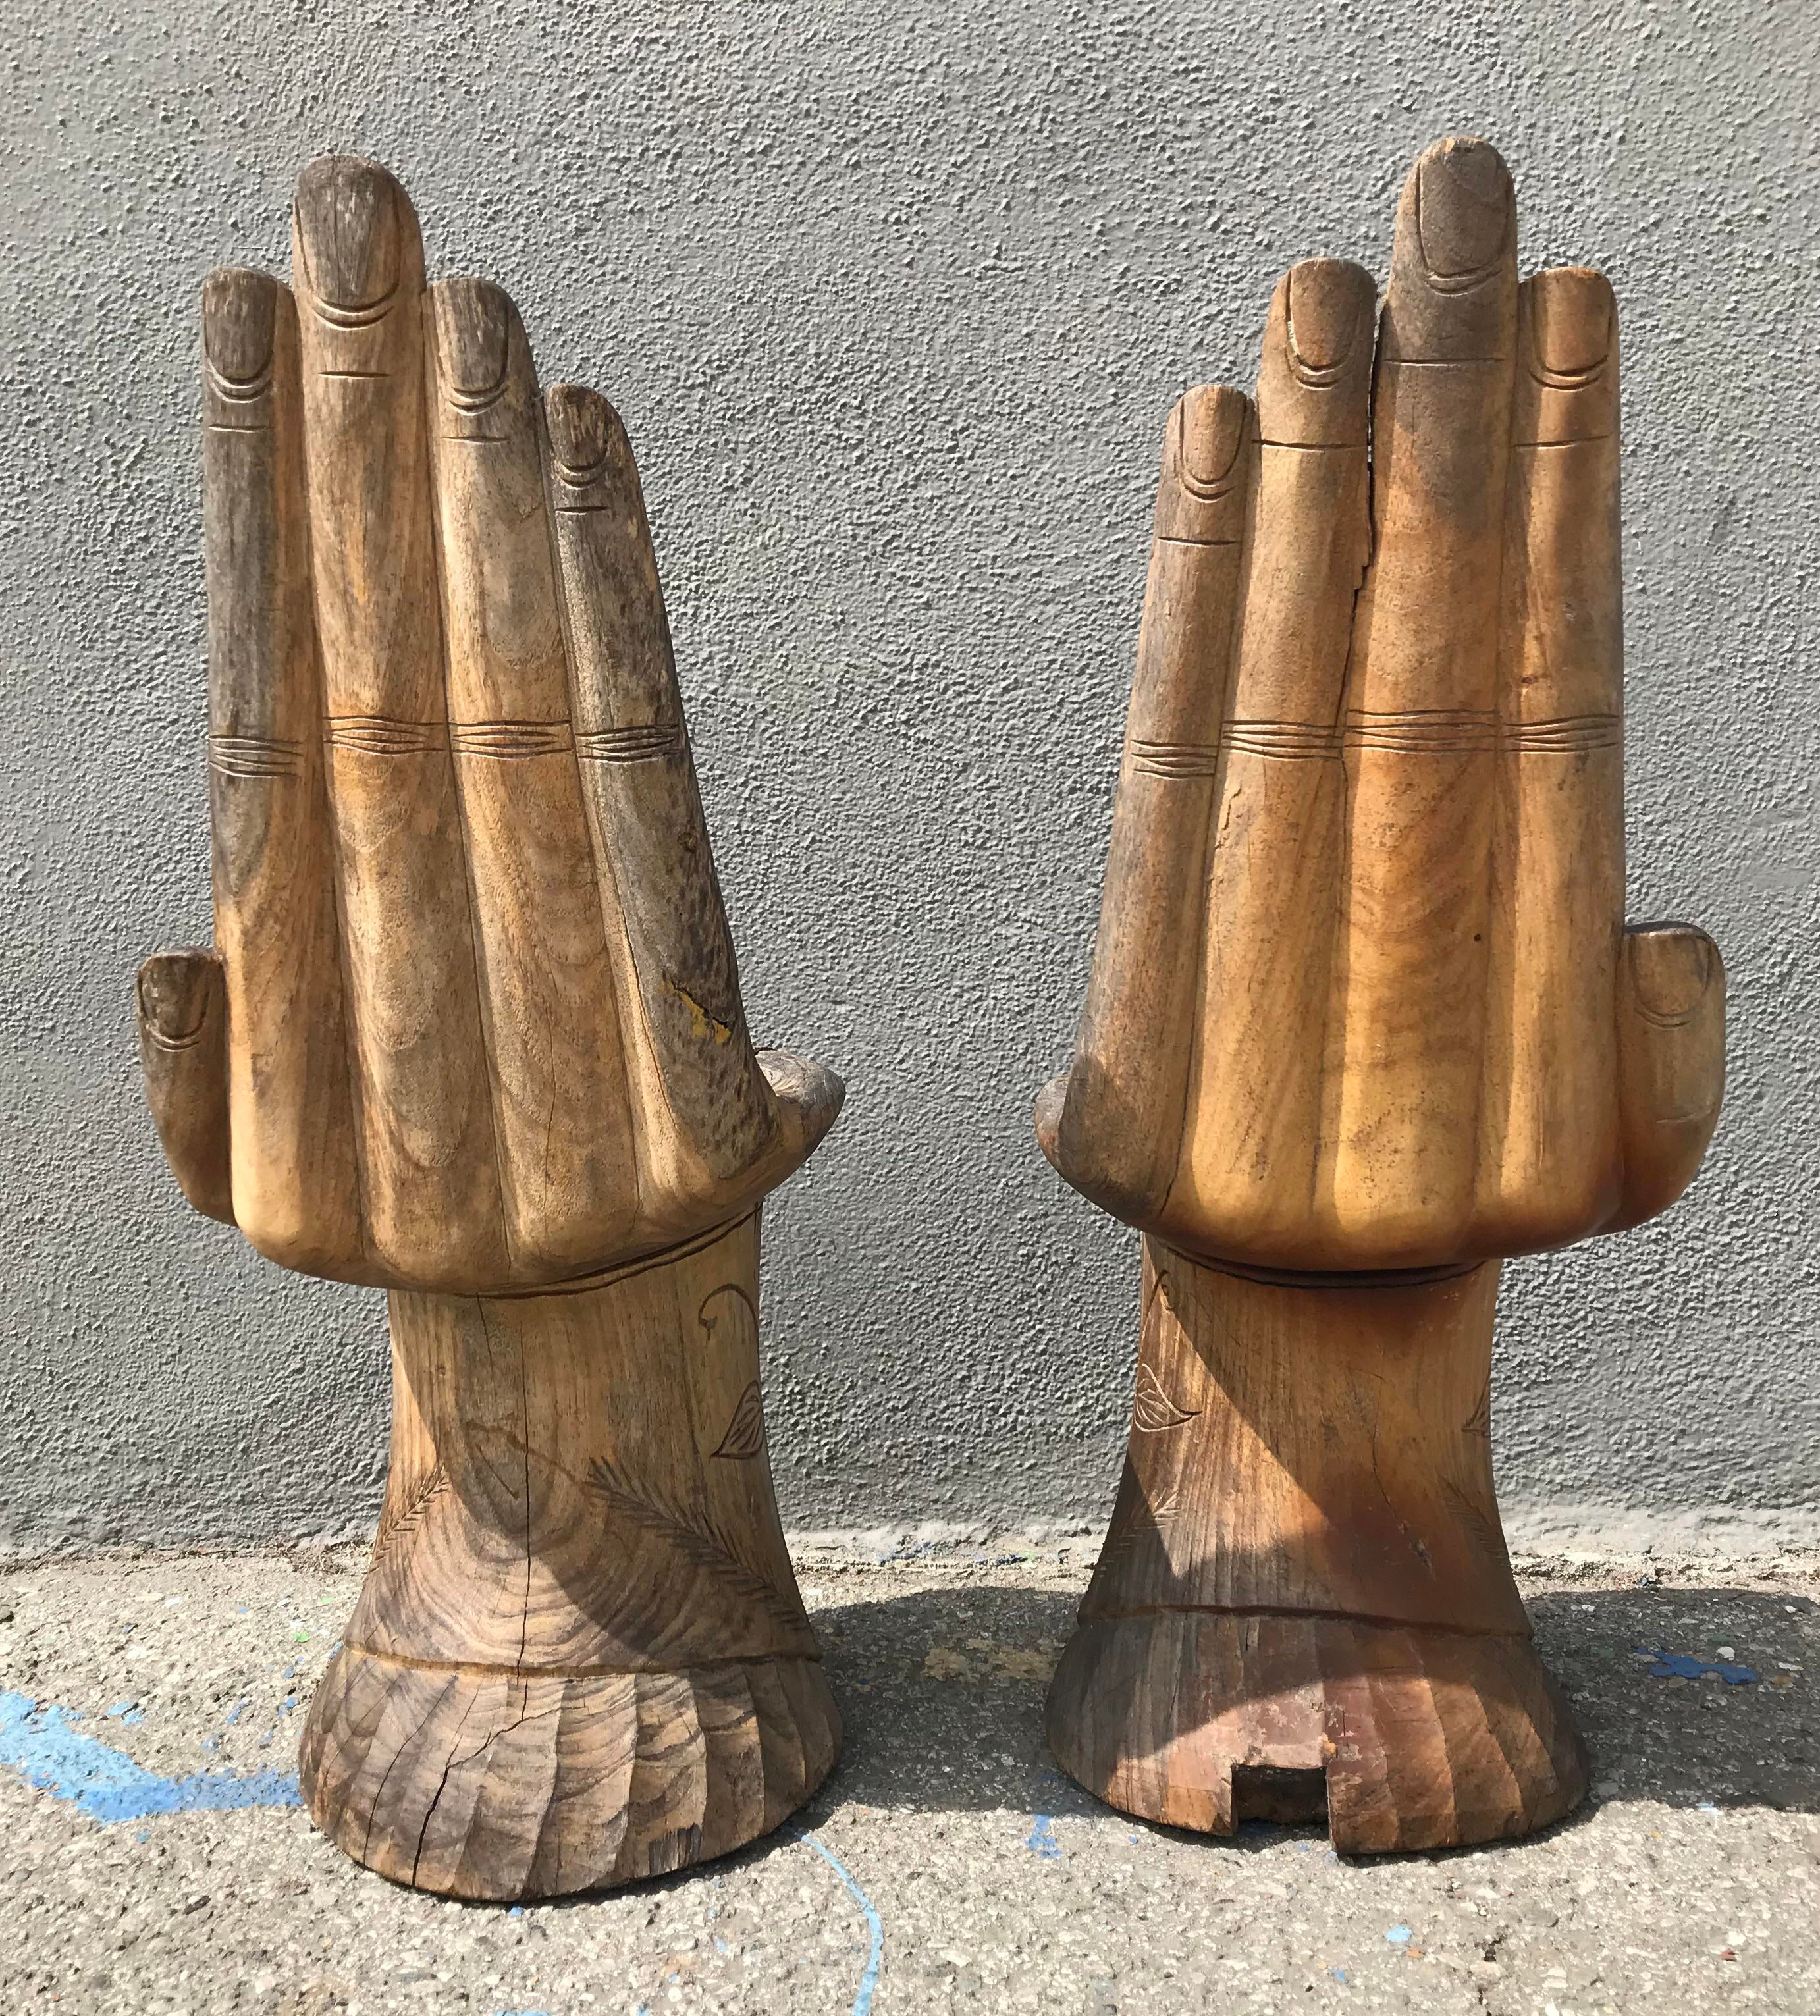 Vintage Hand-Carved Wooden Small Hand Chairs - A Pair - Image 9 of 13 & Vintage Hand-Carved Wooden Small Hand Chairs - A Pair | Chairish